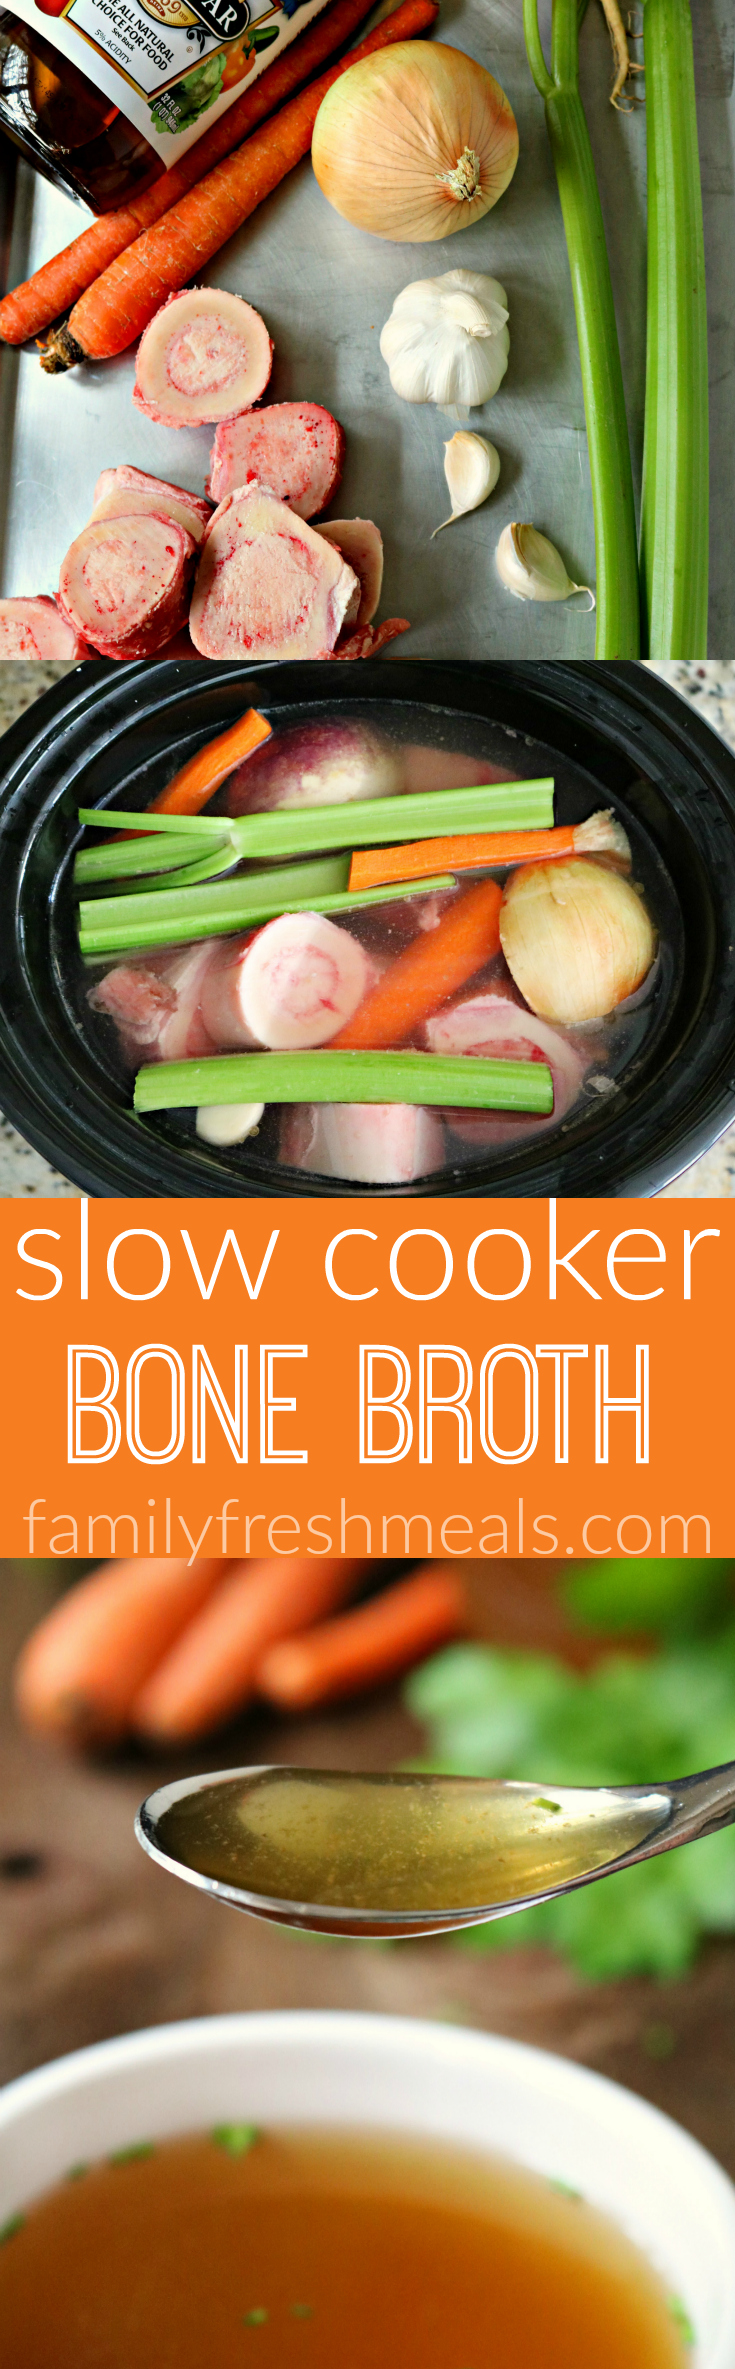 Slow Cooker Bone Broth Recipe - Family Fresh Meals